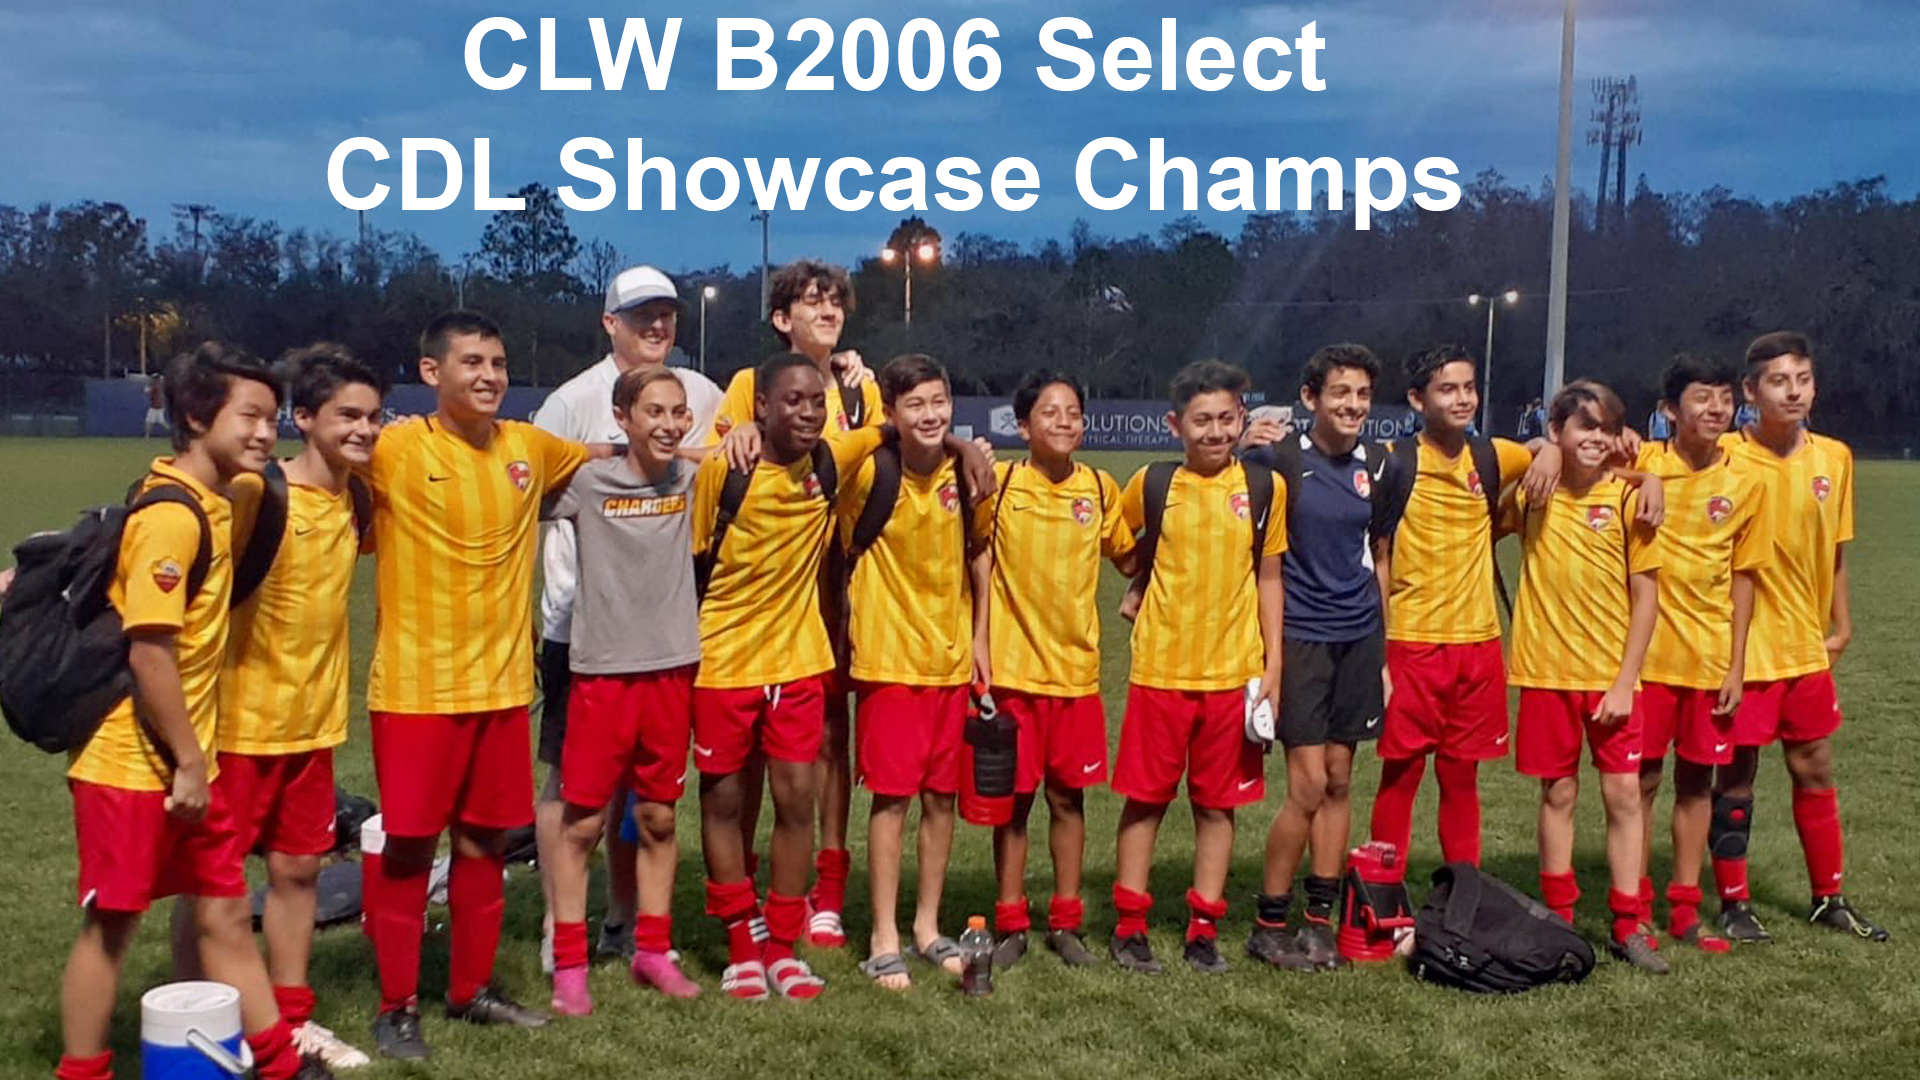 CLW B2006 Select CDL Showcase Champs